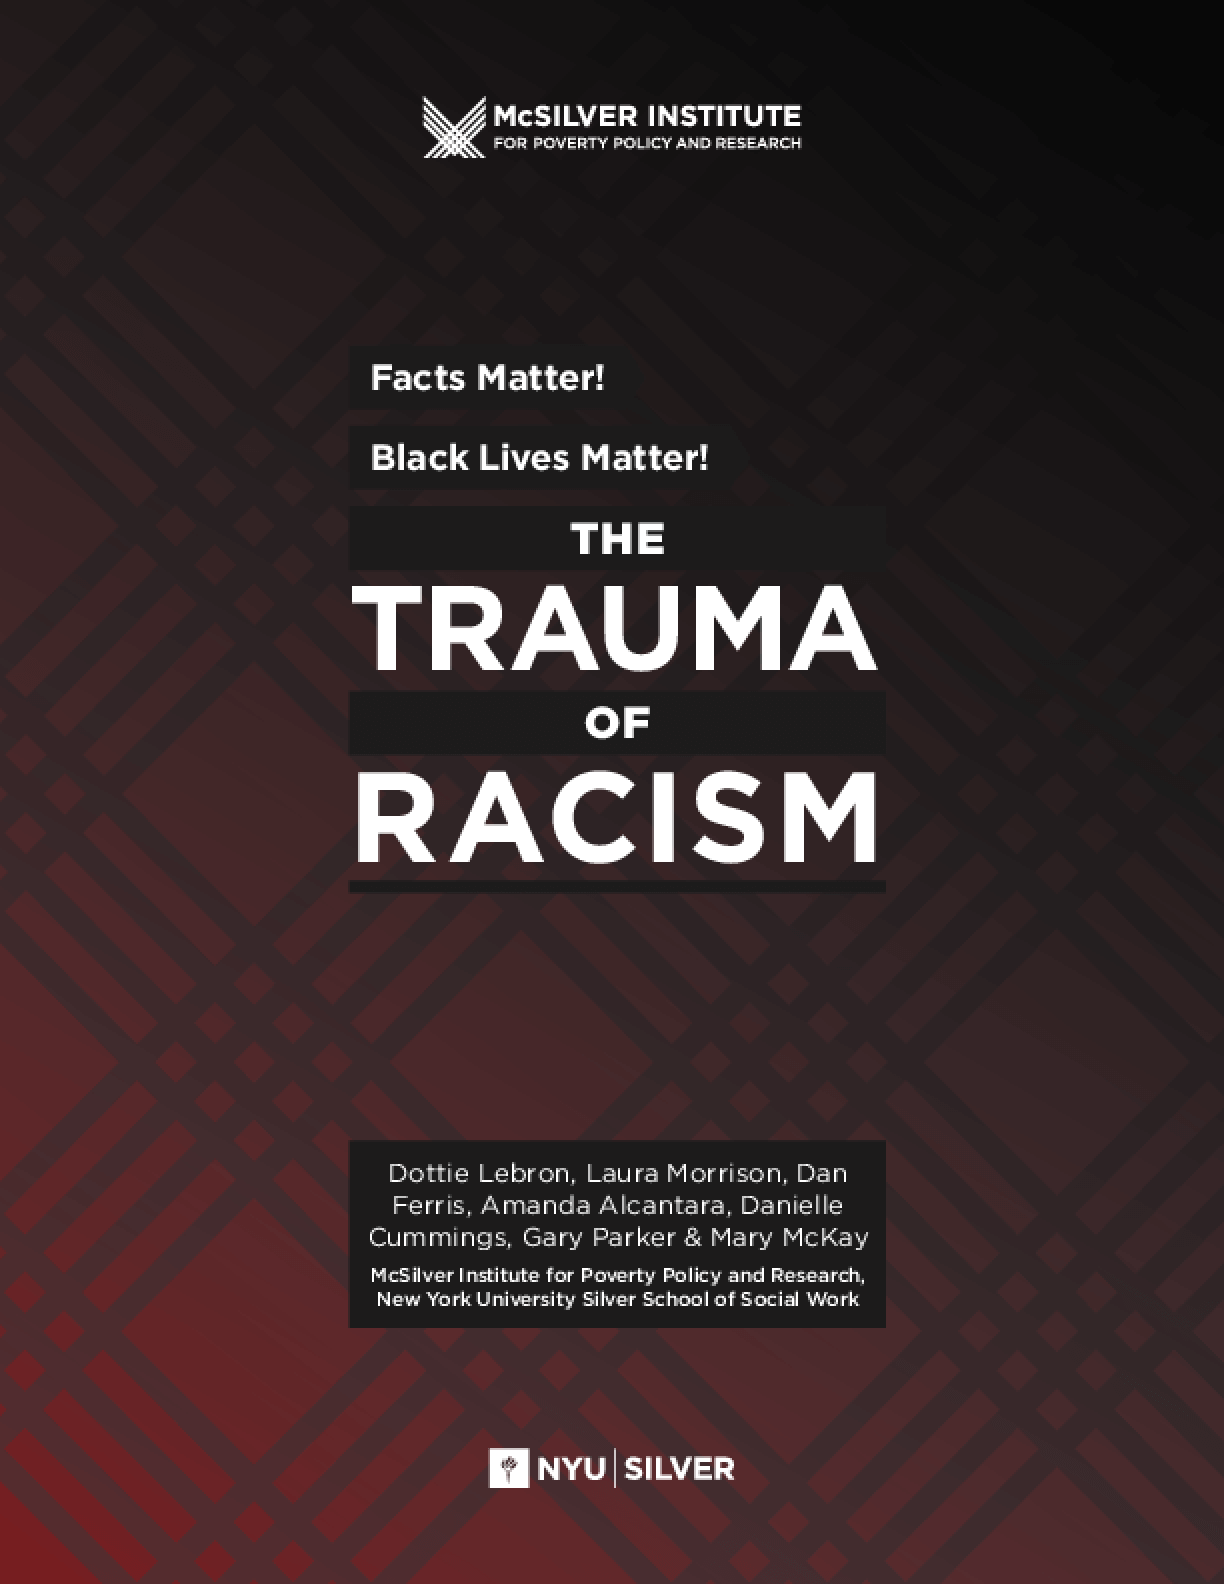 Facts Matter! Black Lives Matter! The Trauma of Racism